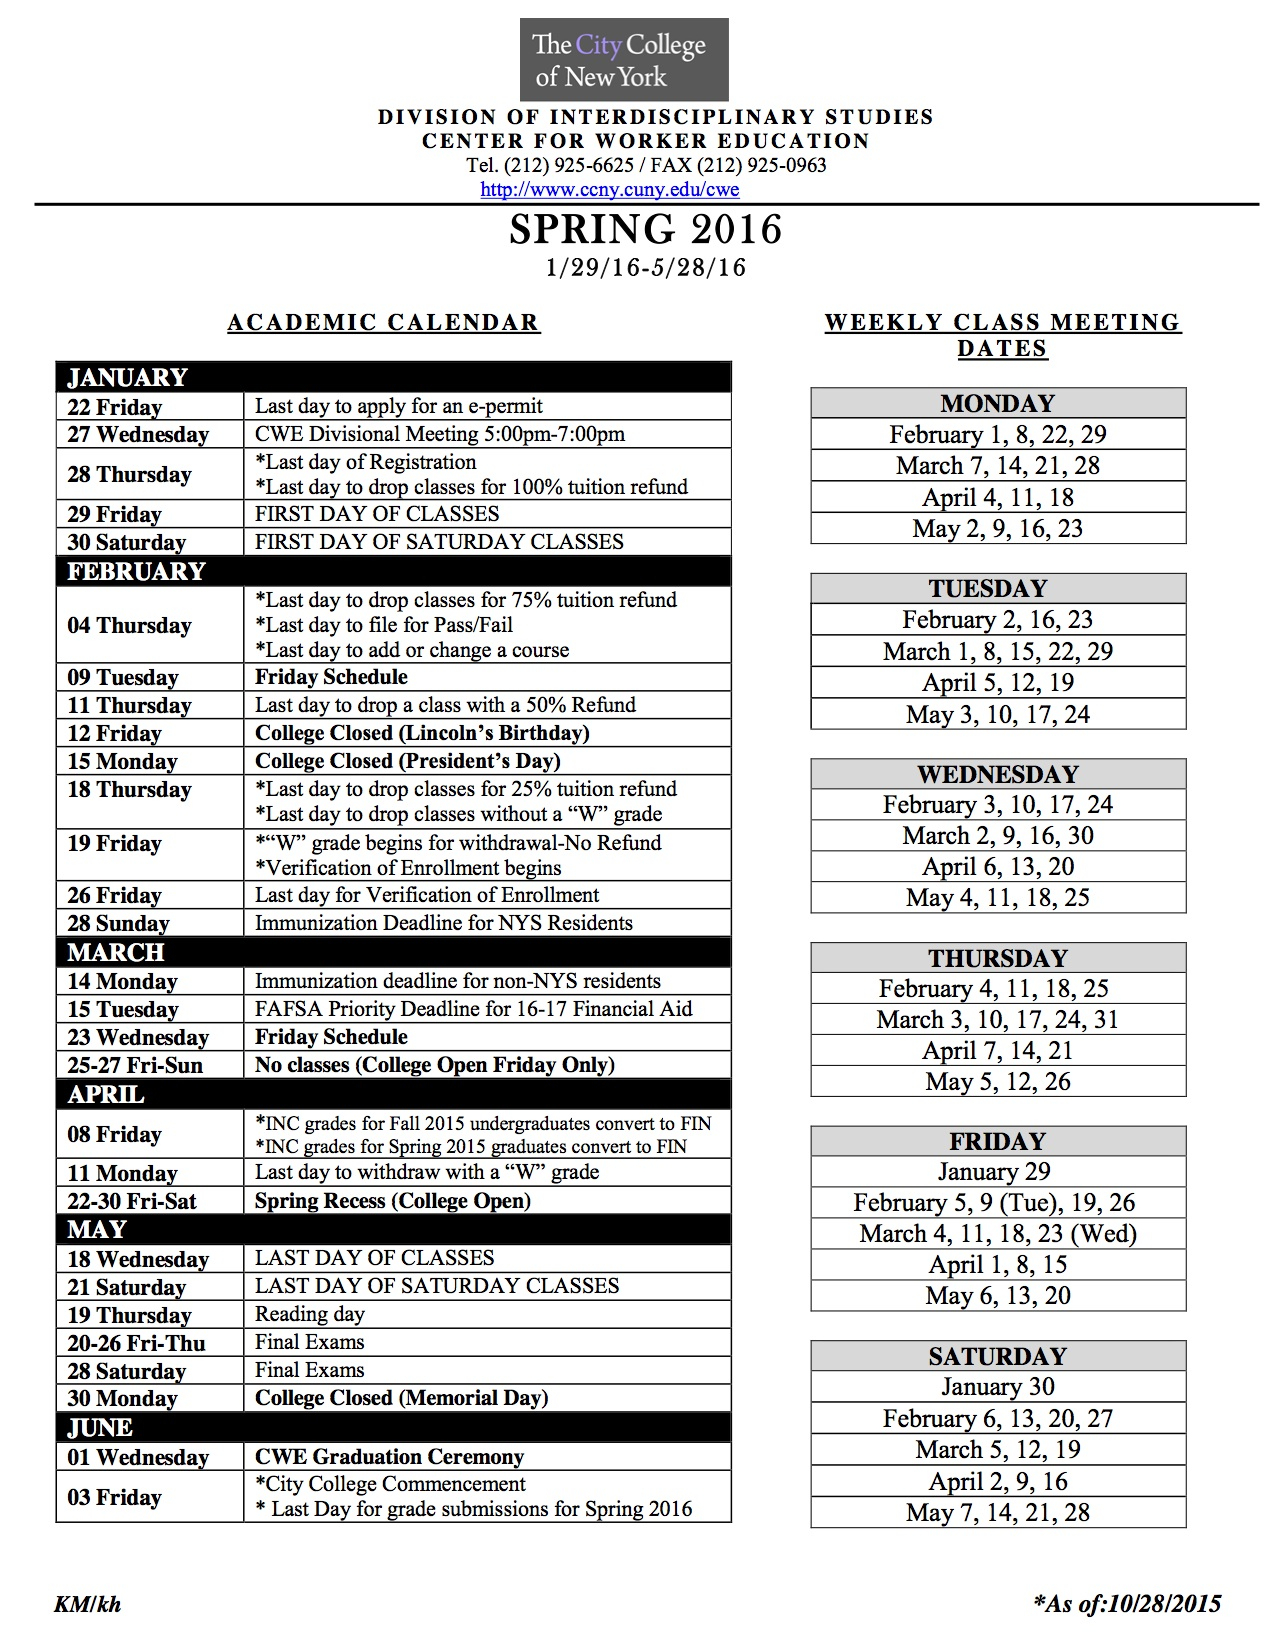 Academic Calendar | The City College Of New York Regarding Nassau Community College Academic Calendar